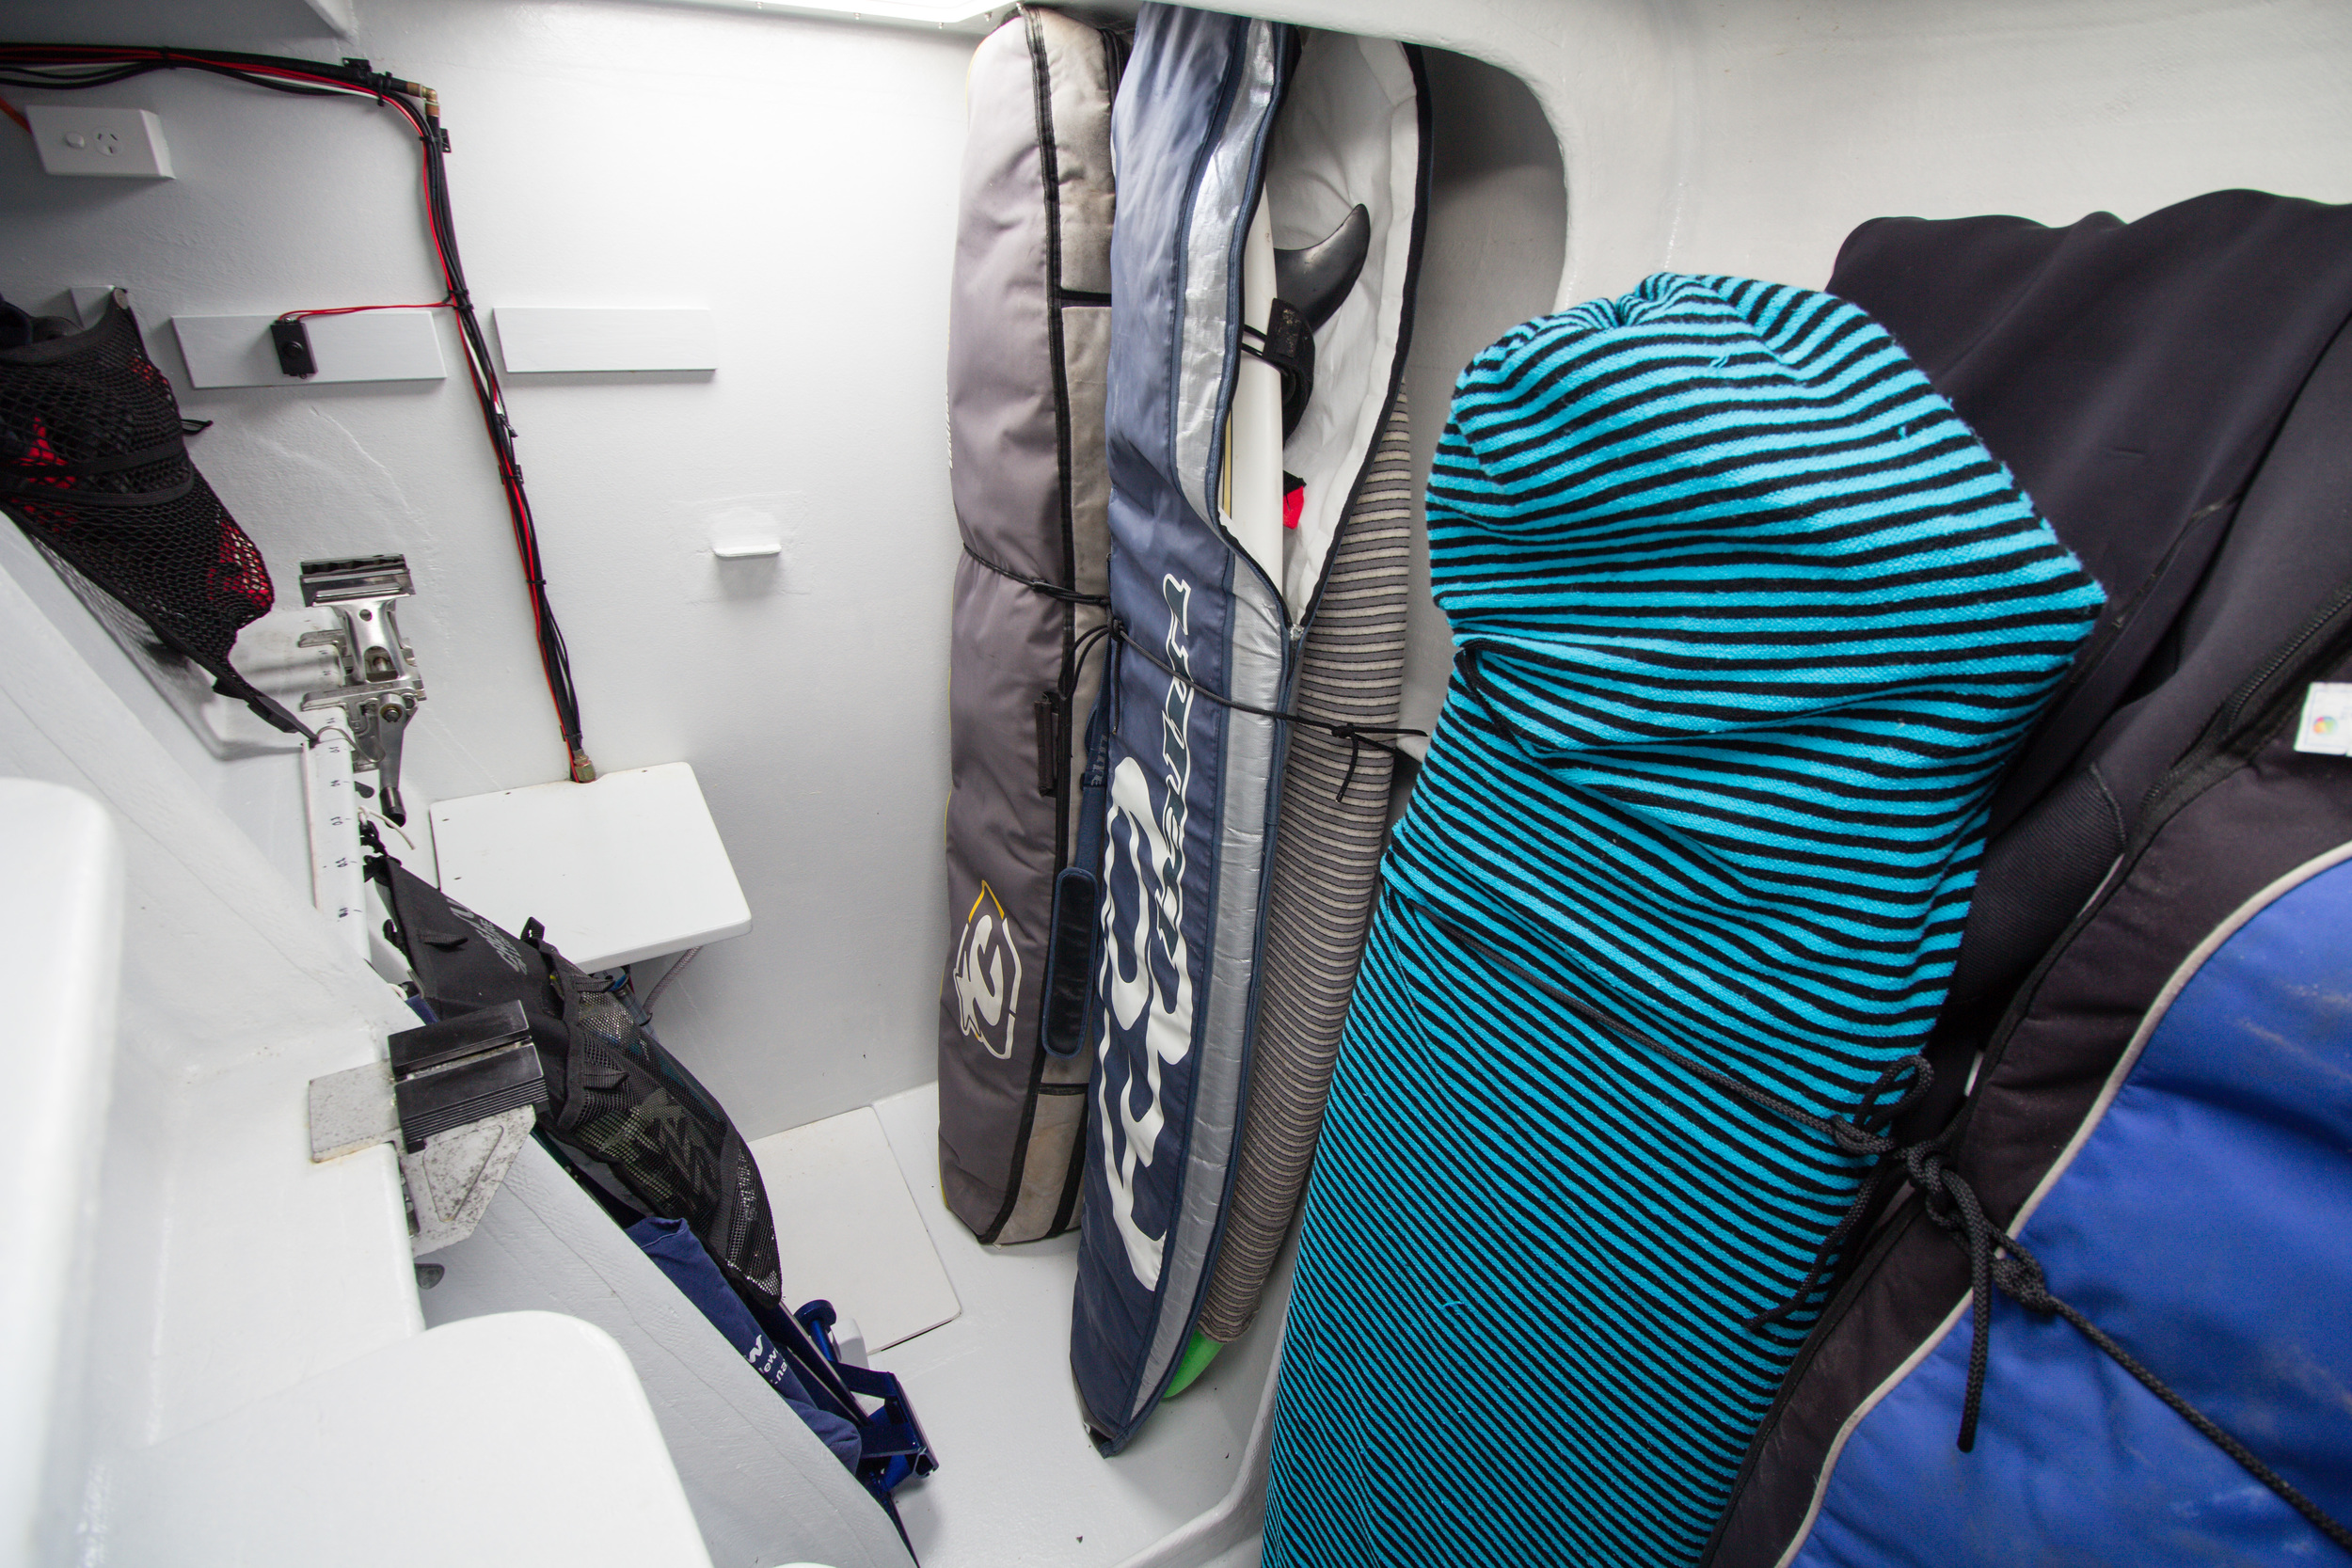 The tidiest the surfboard locker has ever been.